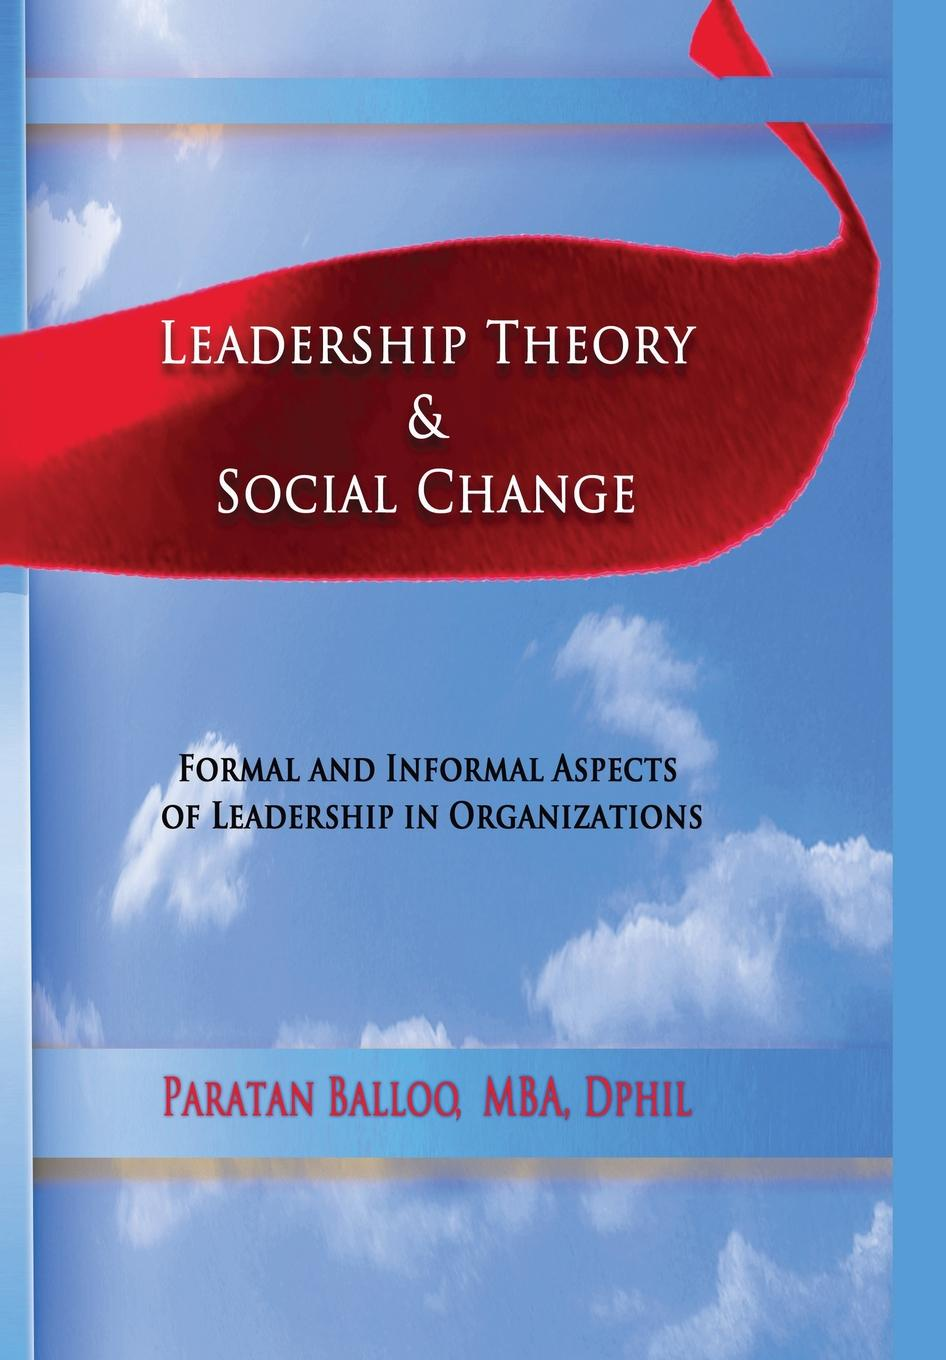 Paratan Balloo LEADERSHIP THEORY & SOCIAL CHANGE. Formal and Informal Aspects of Leadership in Organizations heather carpenter the talent development platform putting people first in social change organizations